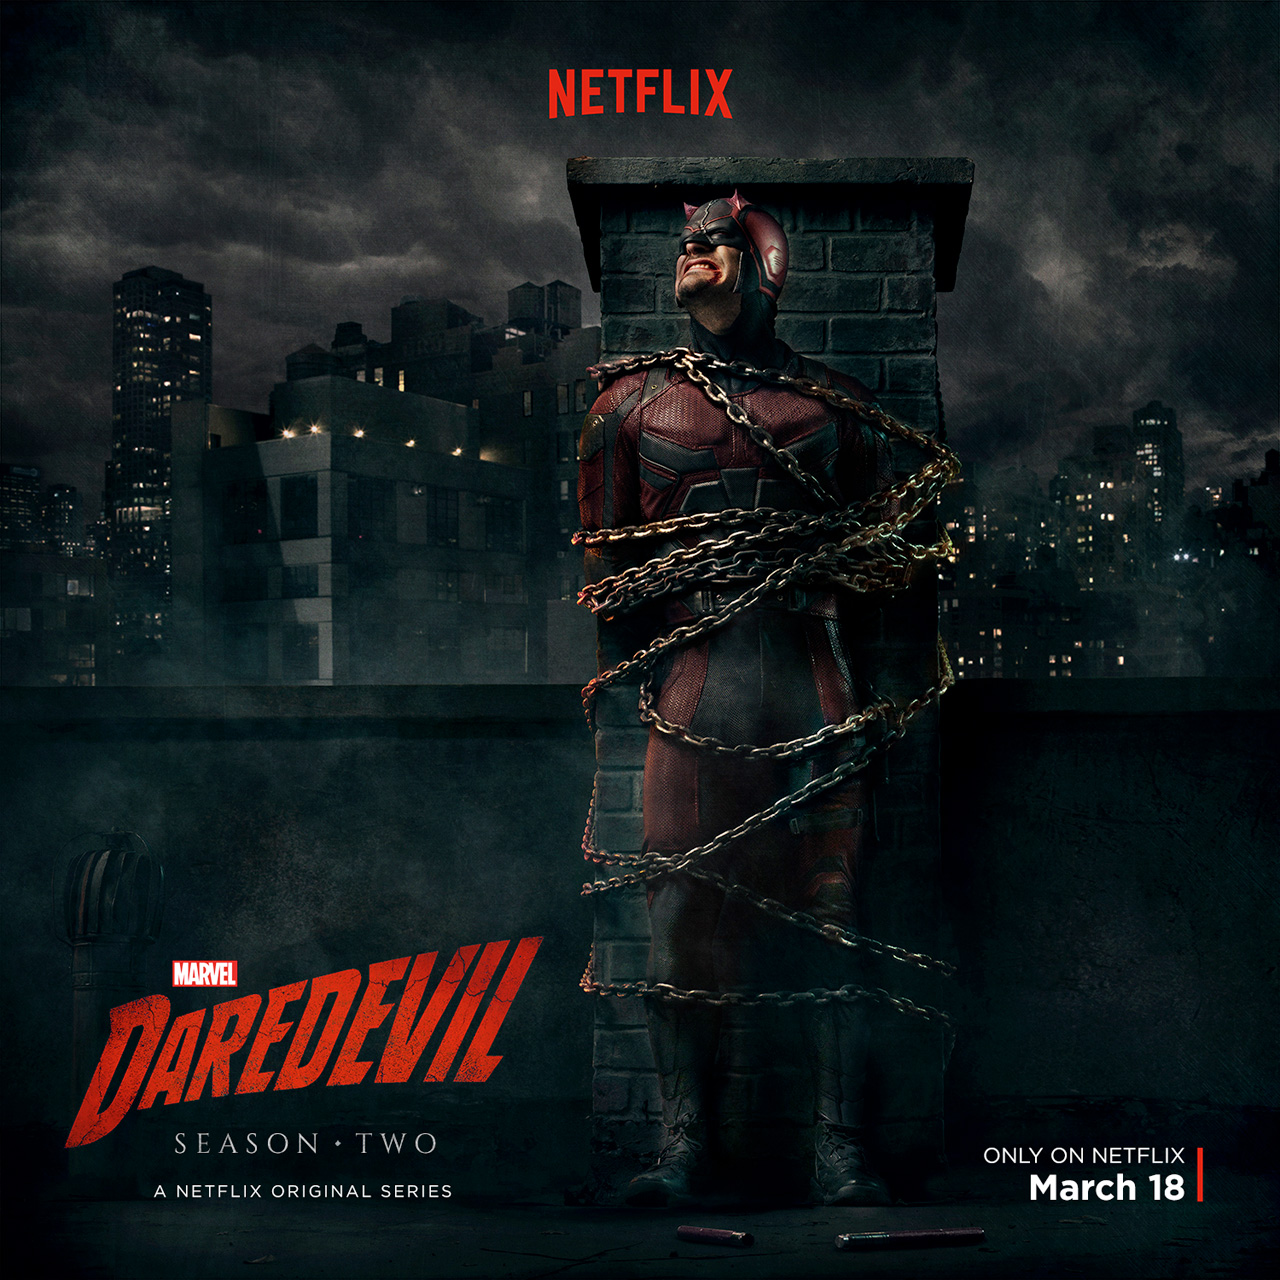 Marvel's Daredevil Season Two